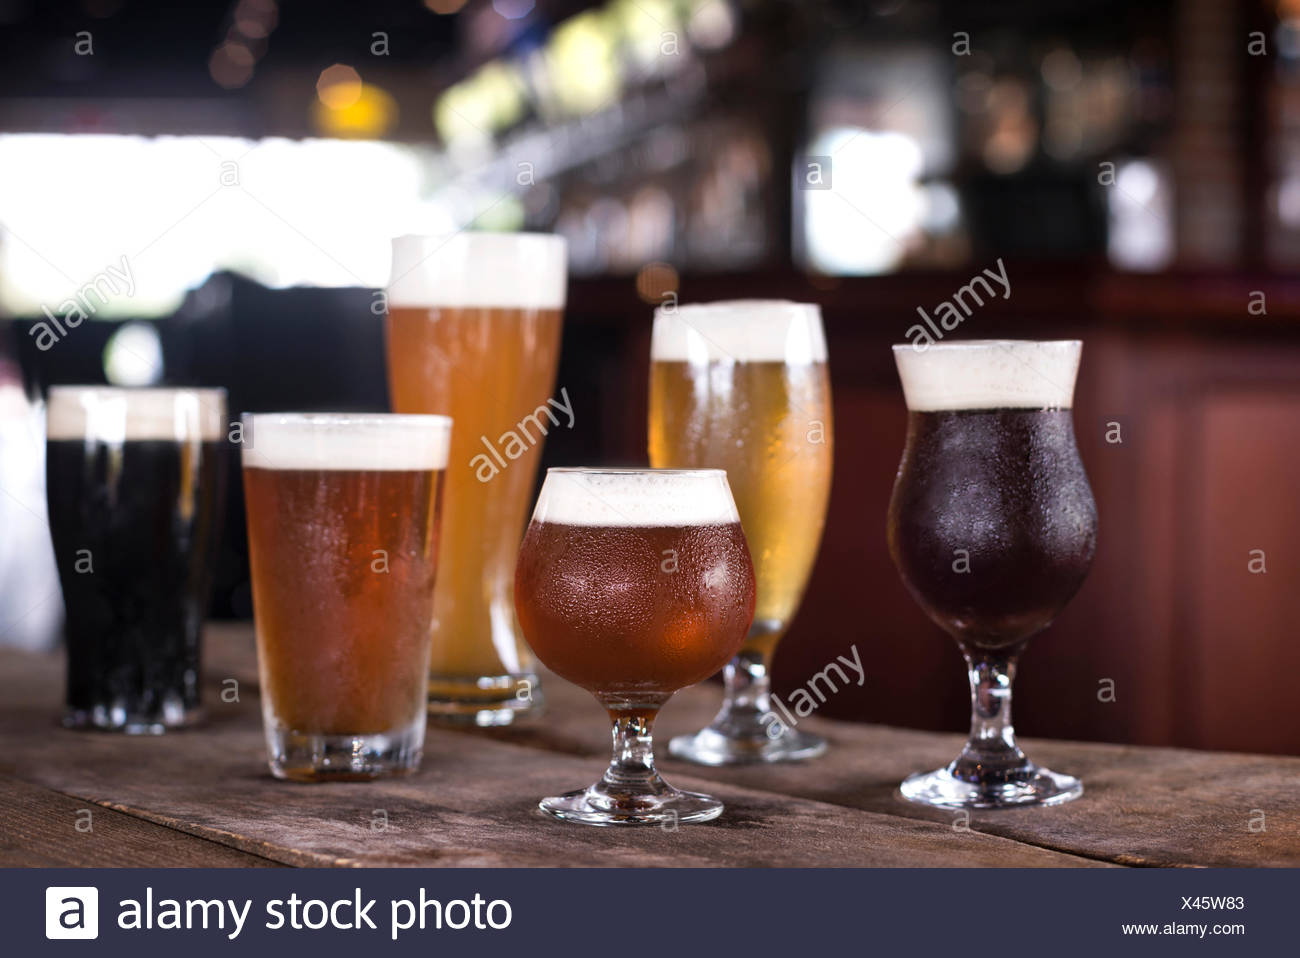 A variety of beers in a variety of glasses on a rustic wood surface with bar in background. - Stock Image